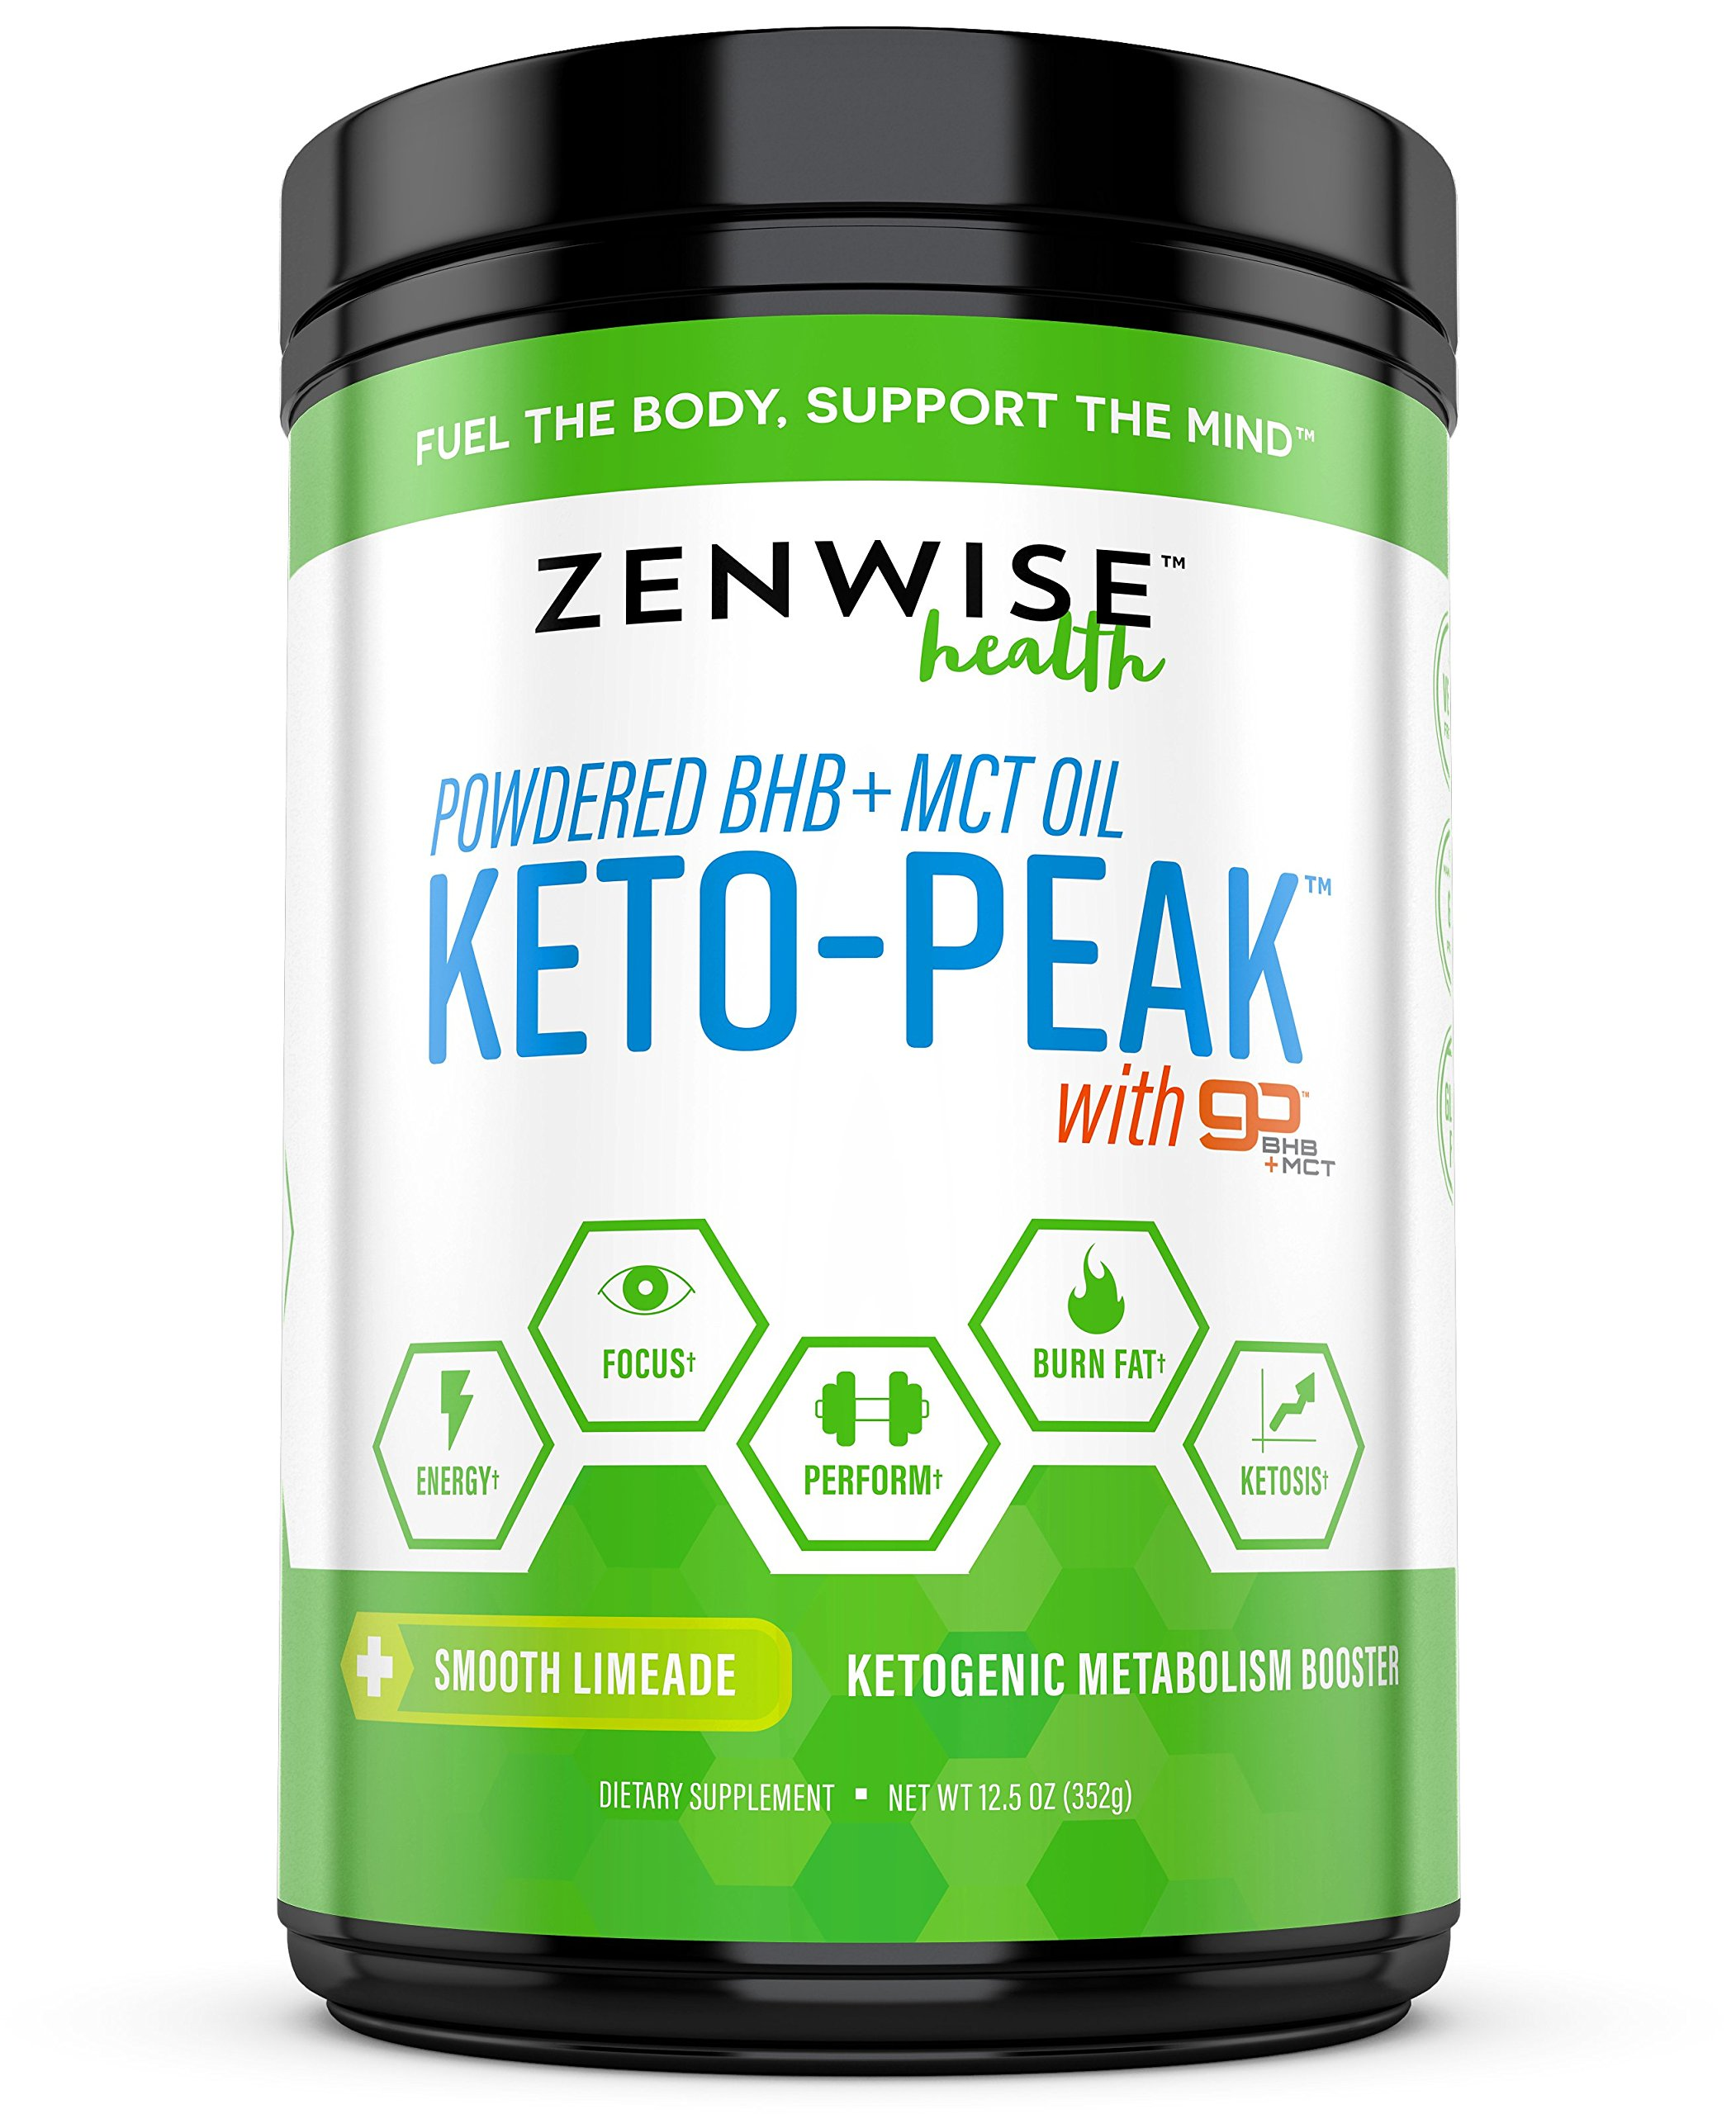 Keto BHB Salts + MCT Oil Powder - Ketogenic Diet Supplement with goBHB+MCT - Beta Hydroxybutyrate Exogenous Ketones + C8 & C10 Triglycerides - Ketosis + Energy - Smooth Lime by Zenwise Health